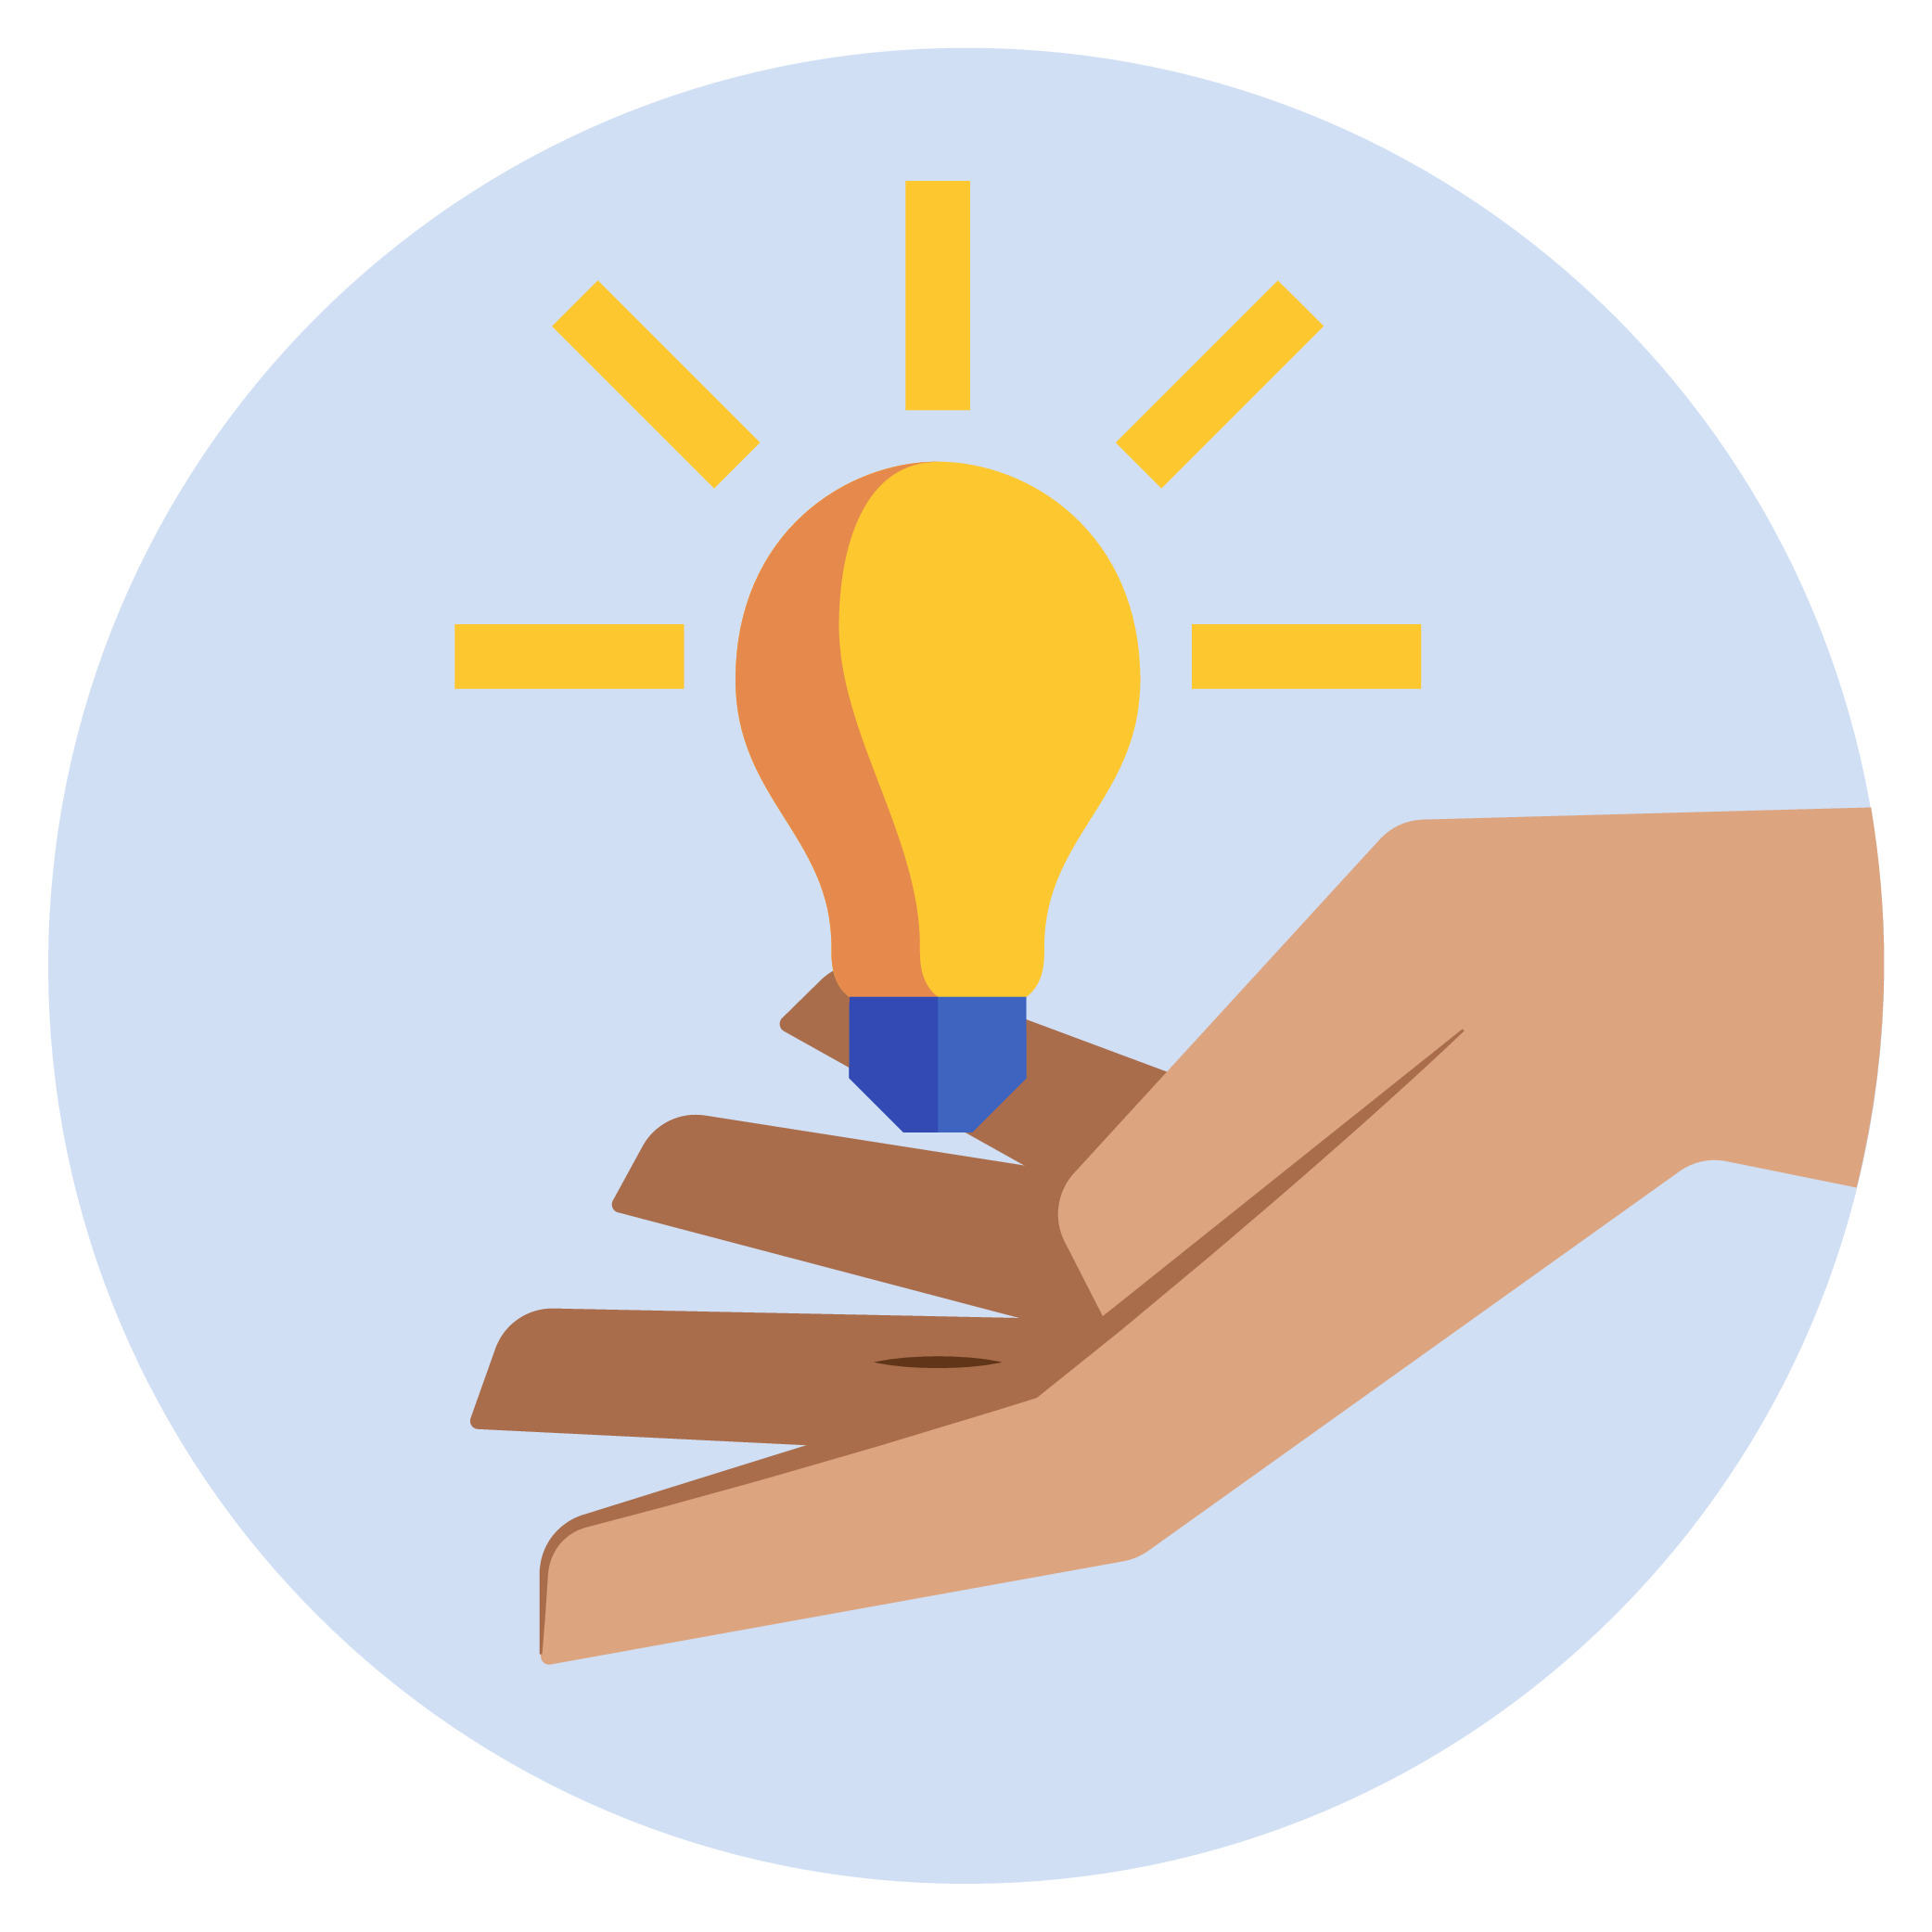 A lightbulb floating on top of a hand.